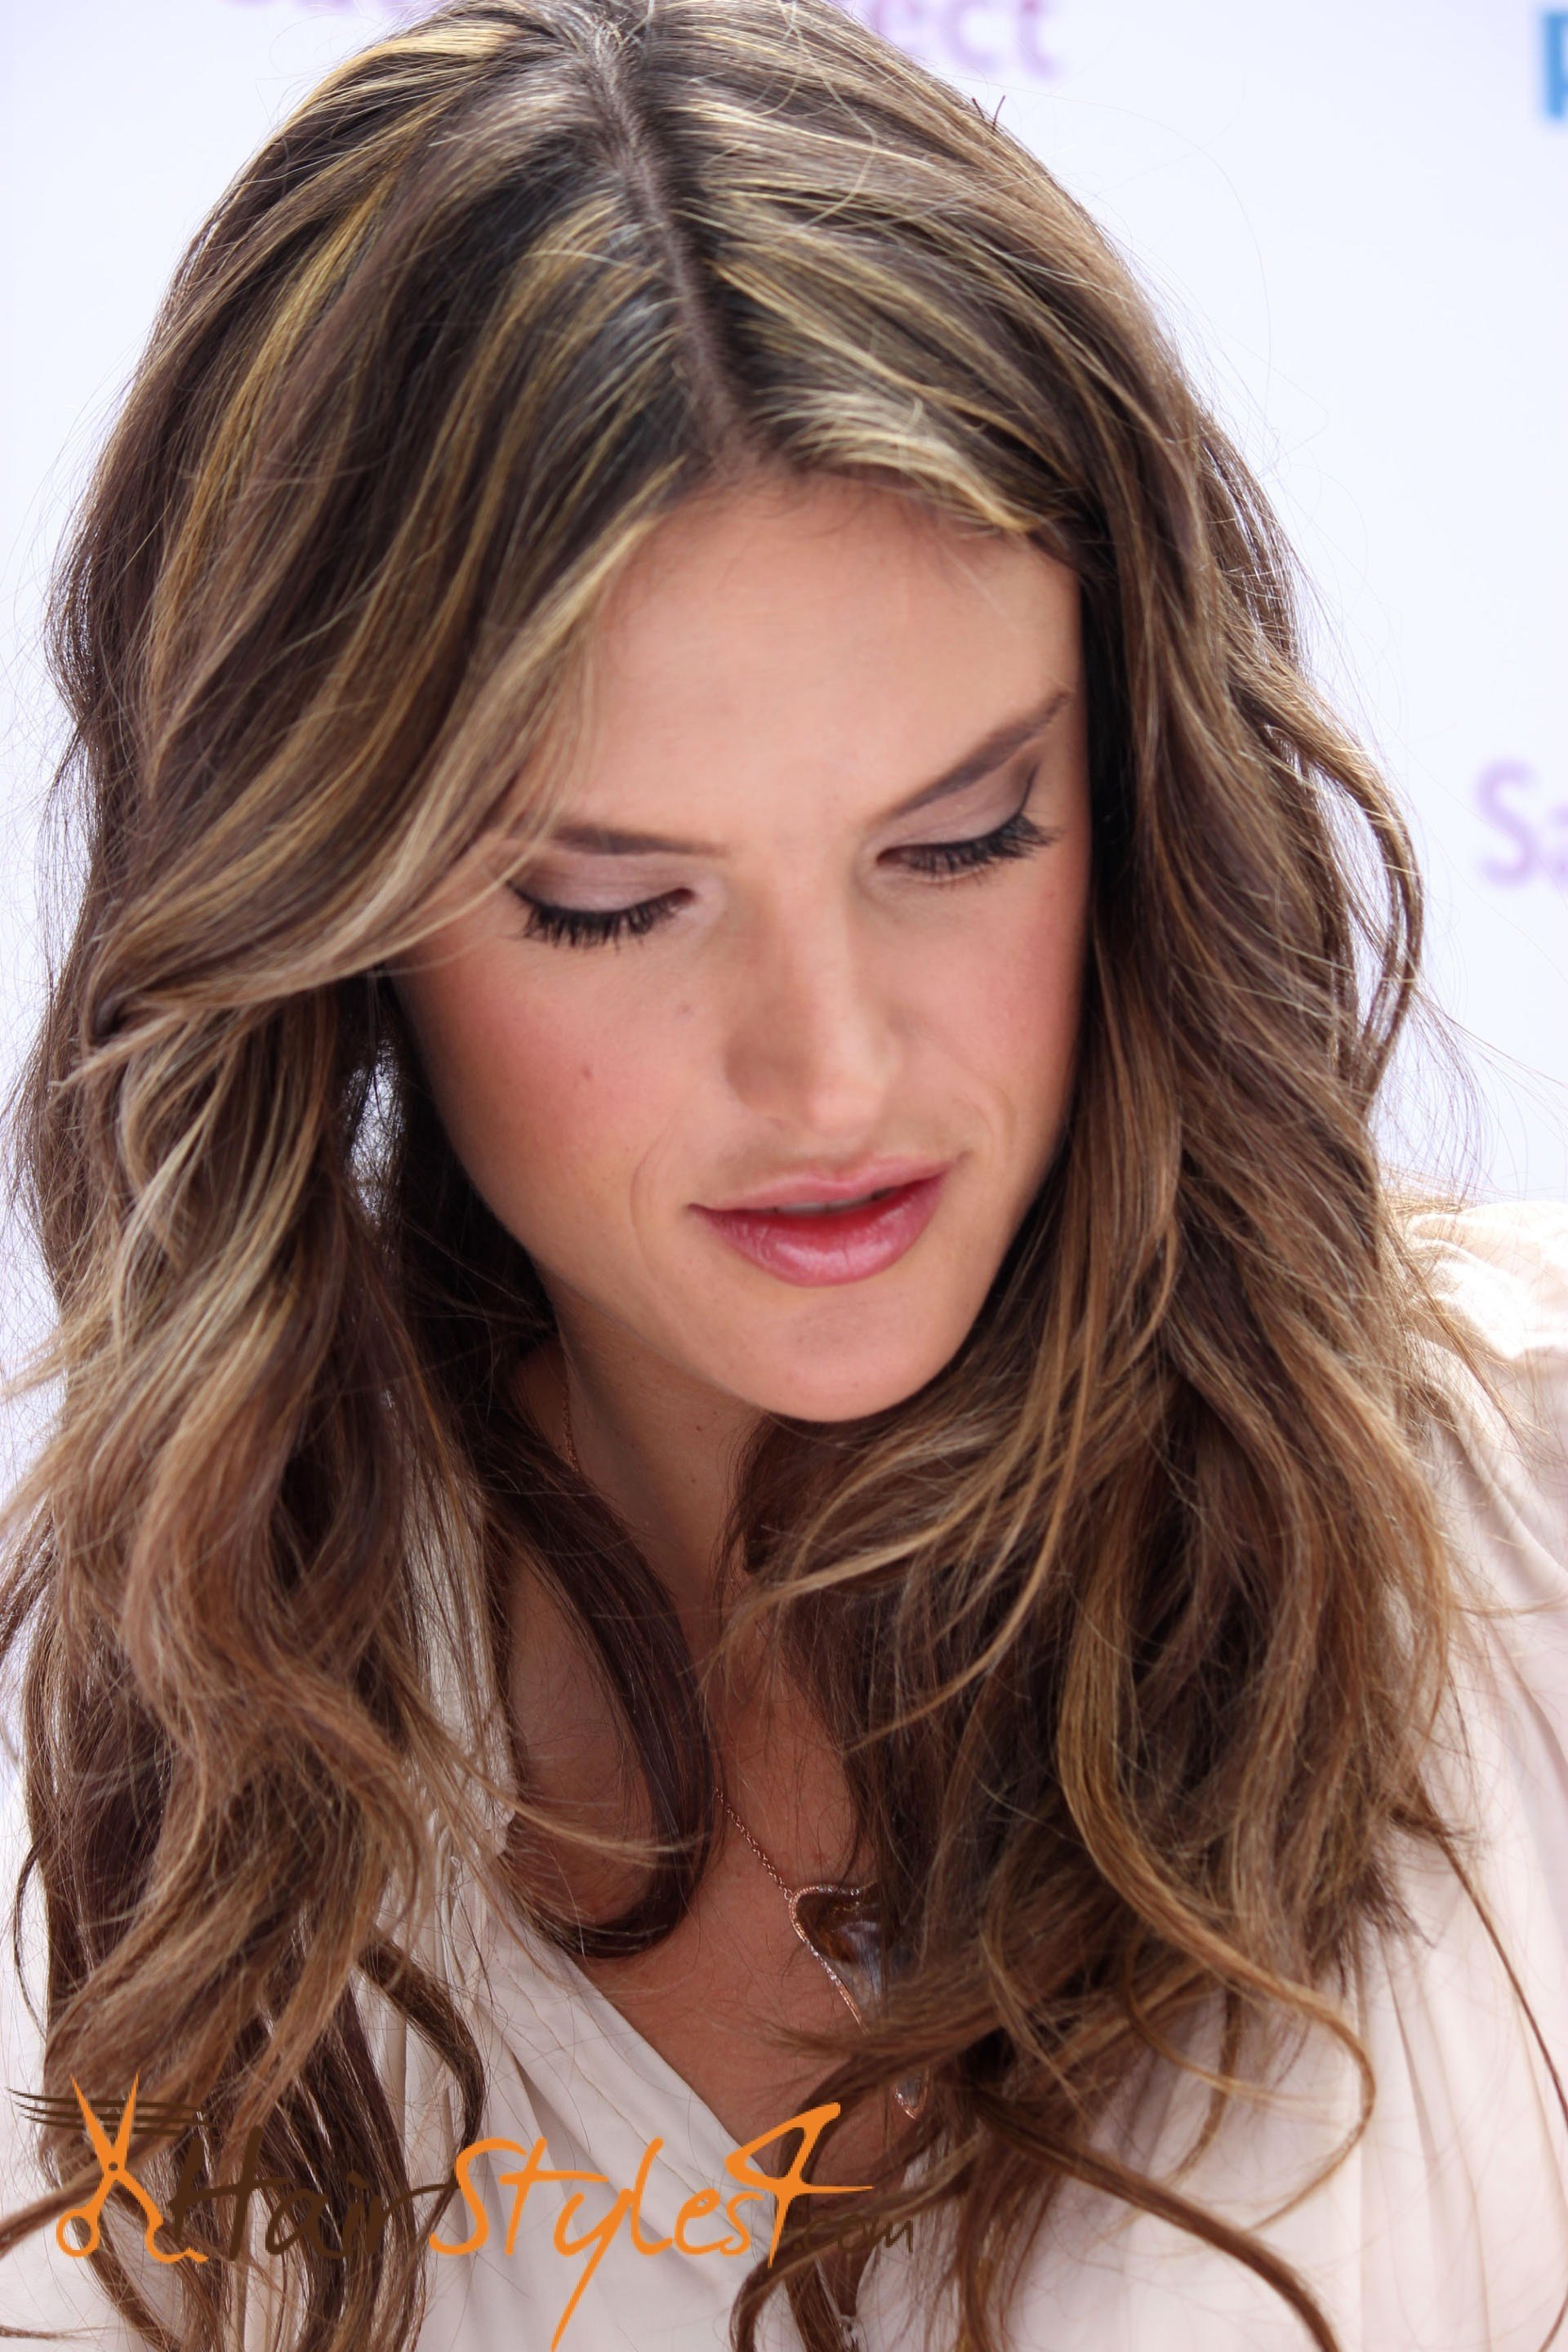 The Best Brown Hair Colors For Cool Skin Tones Hairstyles4 Com Pictures